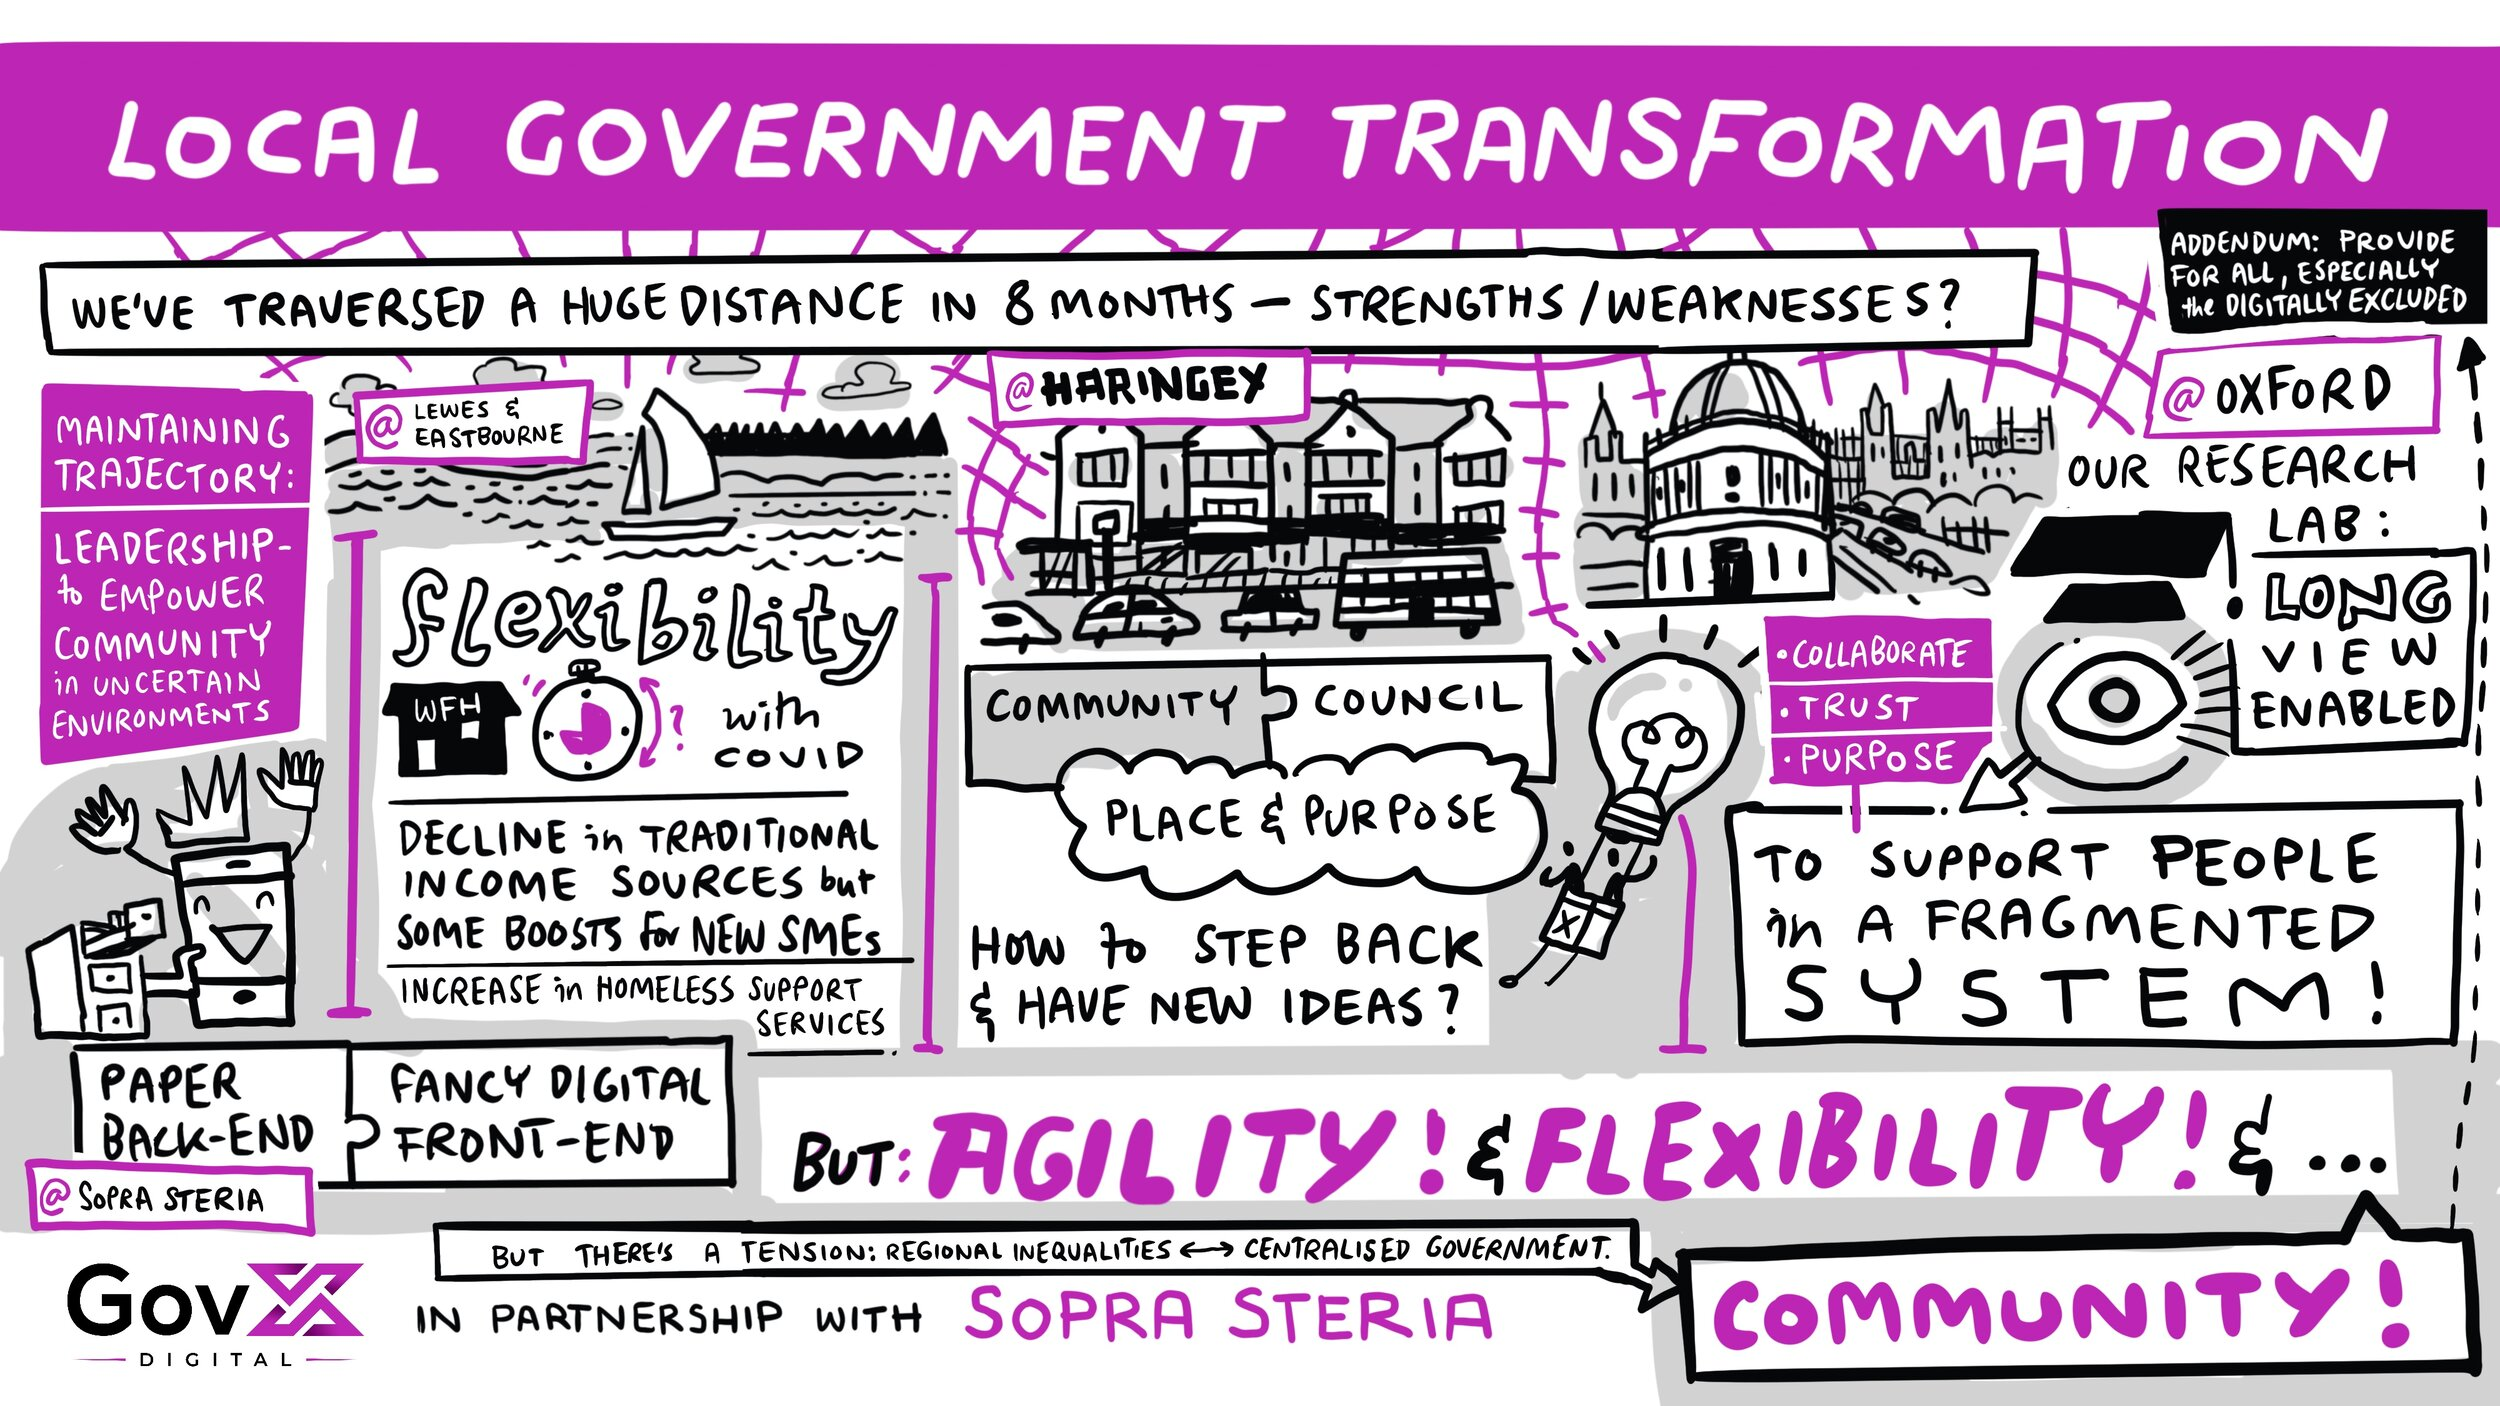 How to transform local government for the post-Covid era